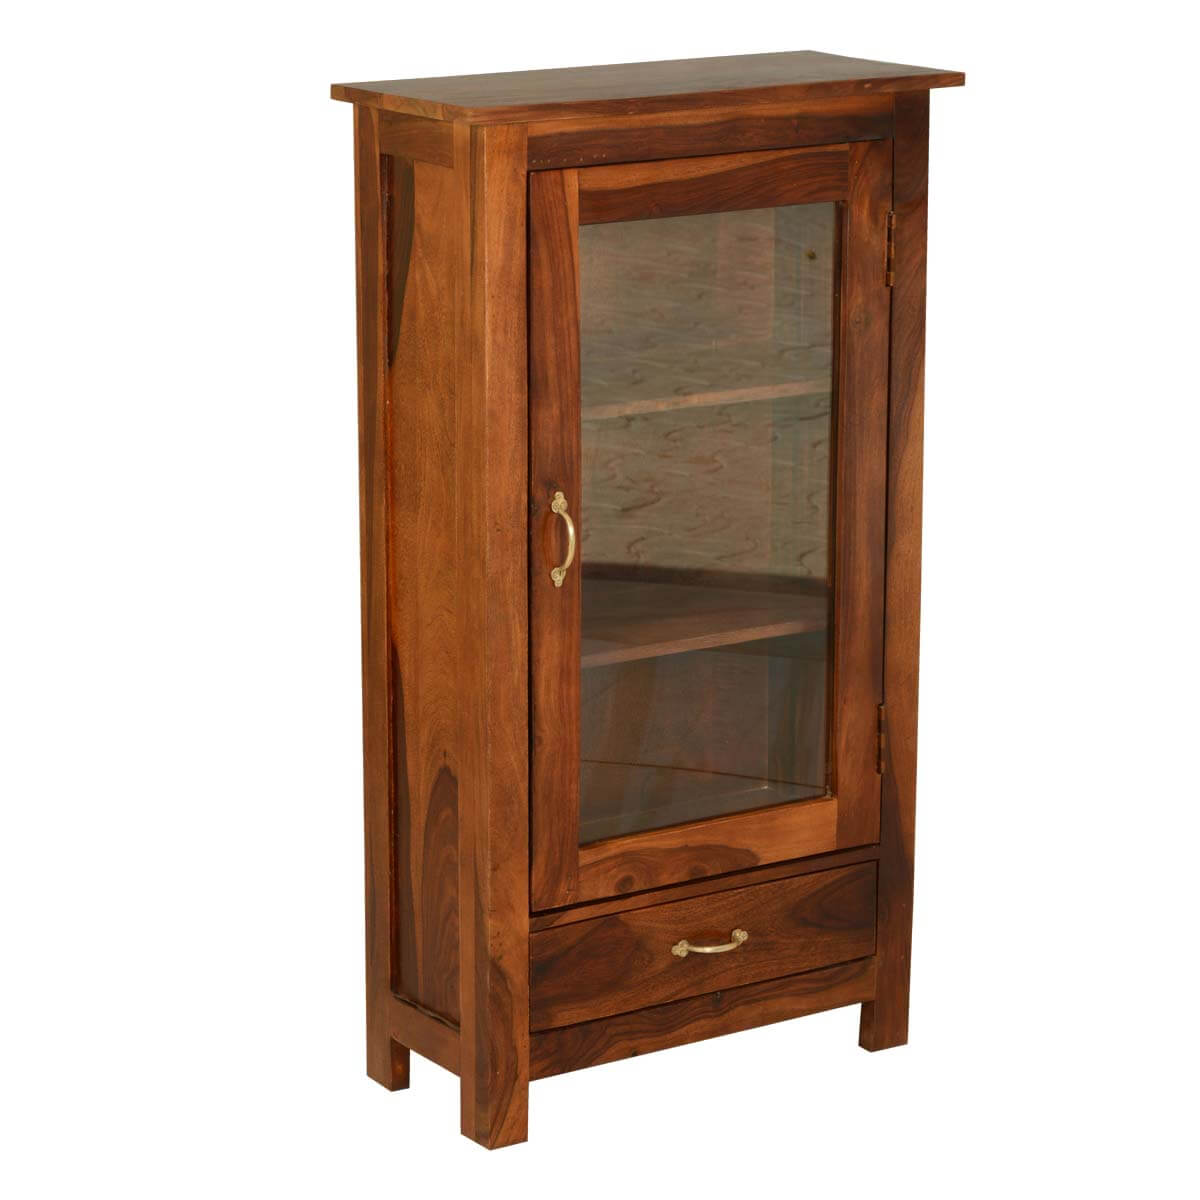 Pinellas solid wood single glass door 1 drawer curio cabinet for Solid wood door with glass